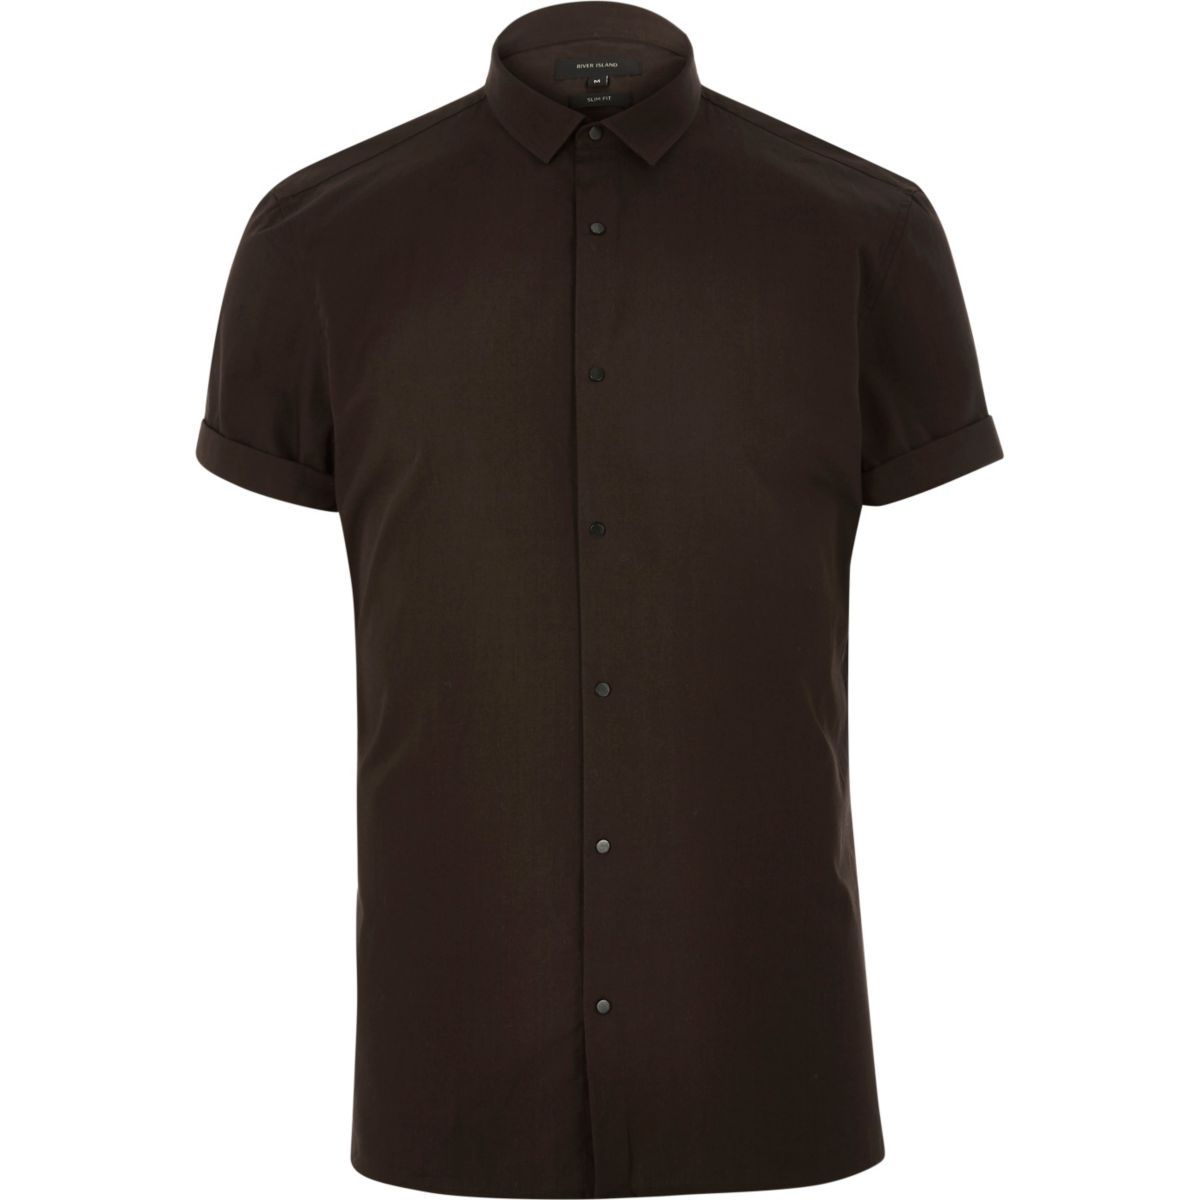 Brown short sleeve popper shirt